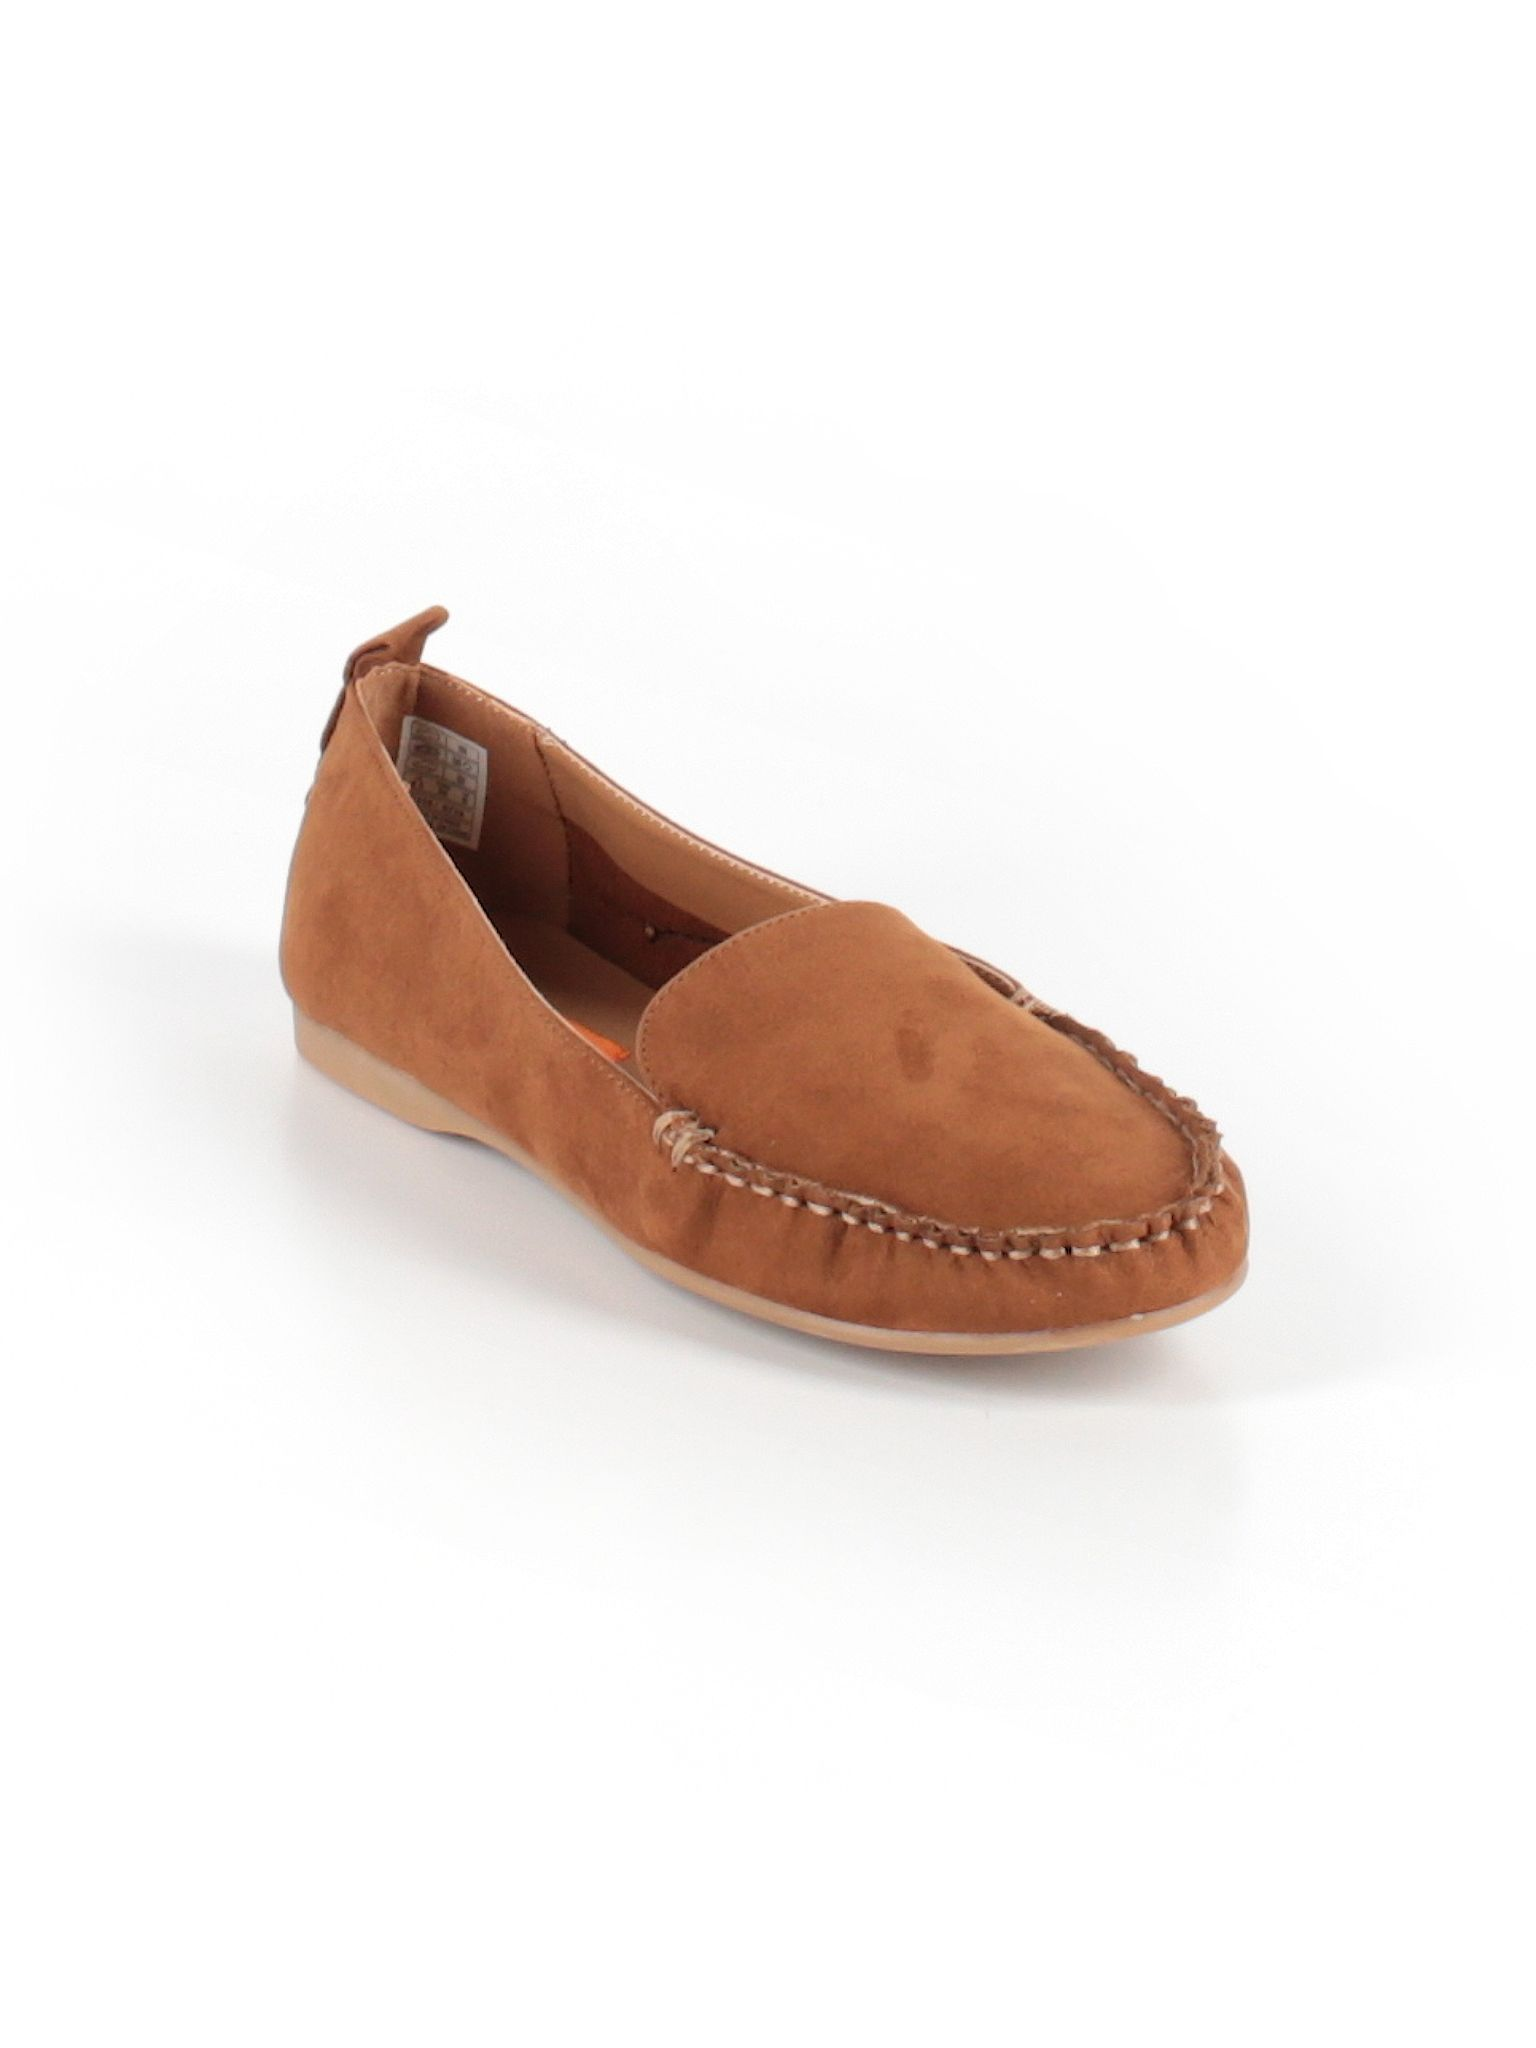 47b9a12c47b6f Rocket Dog Flats: Size 8.00 Brown Women's Clothing - New With Tags - $32.99